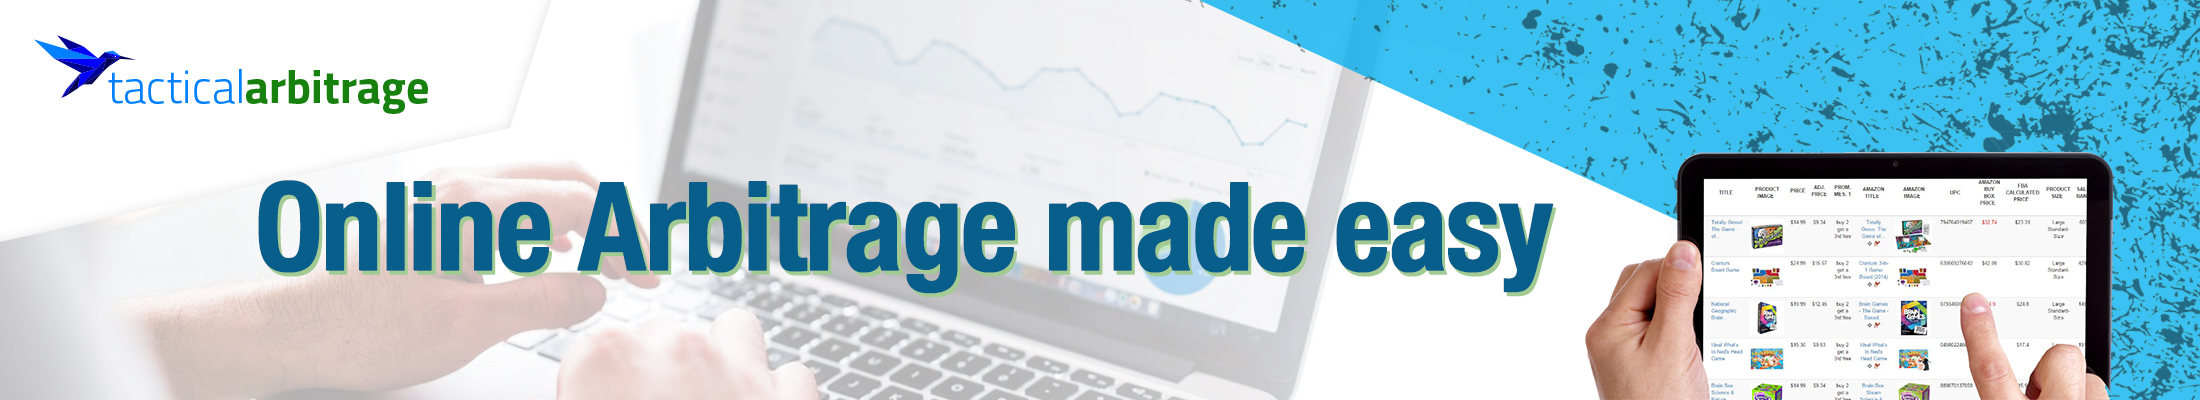 Tactical Arbitrage - Online Arbitrage Made Easy